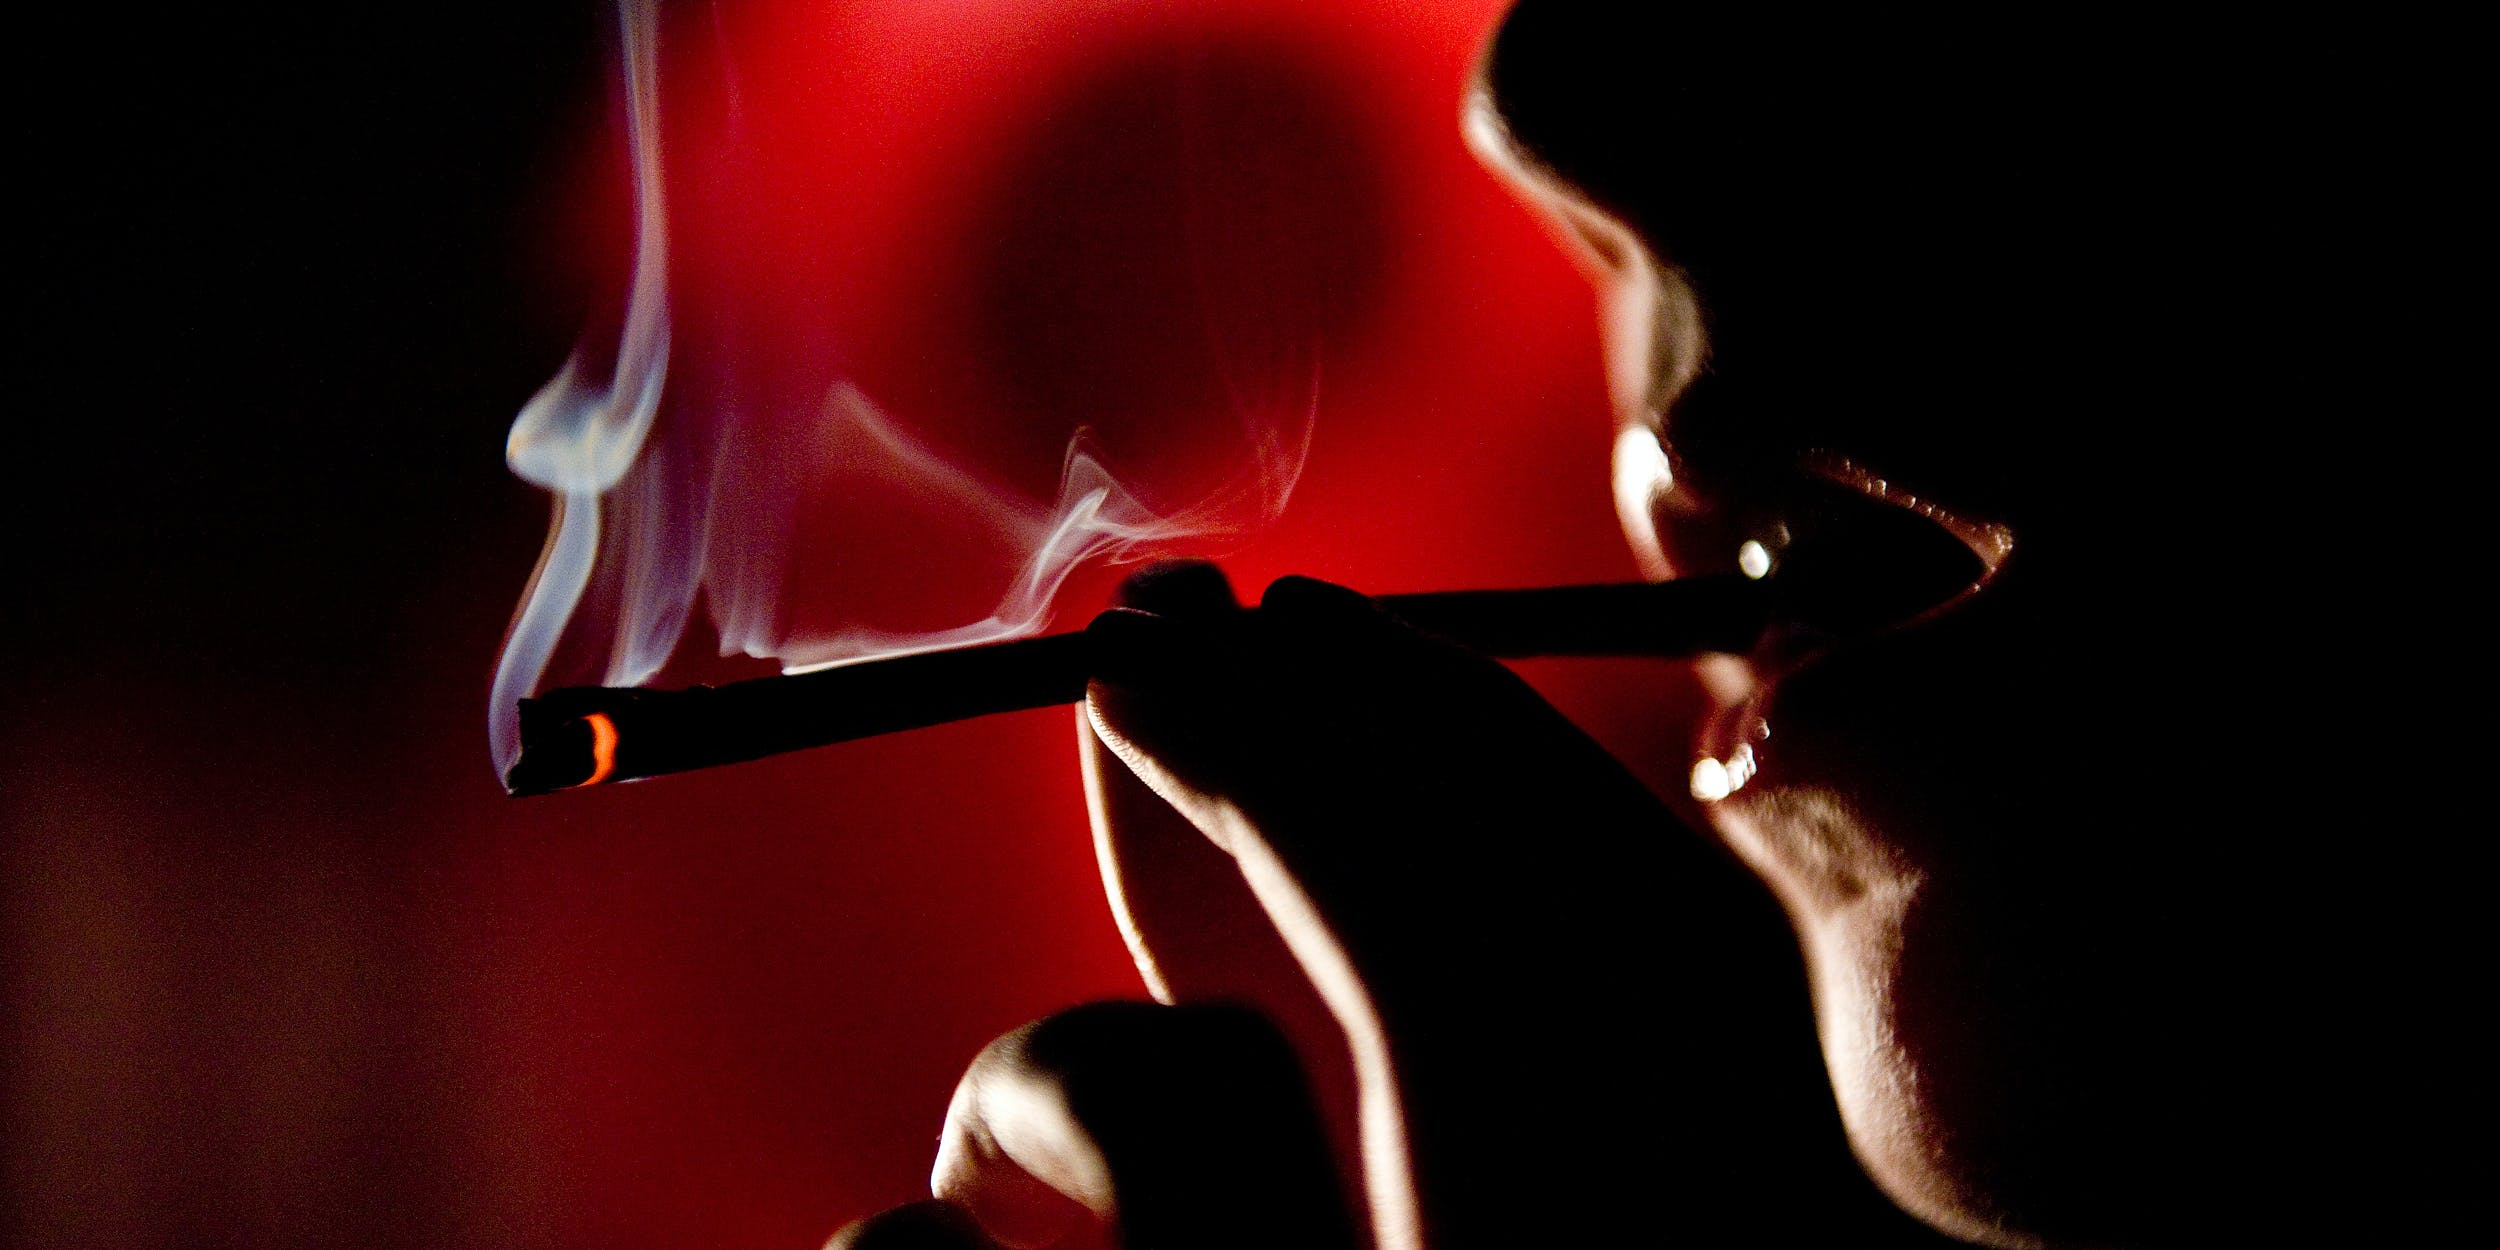 San Francisco Becomes America's Weed Capital With High-End Smoking Lounges